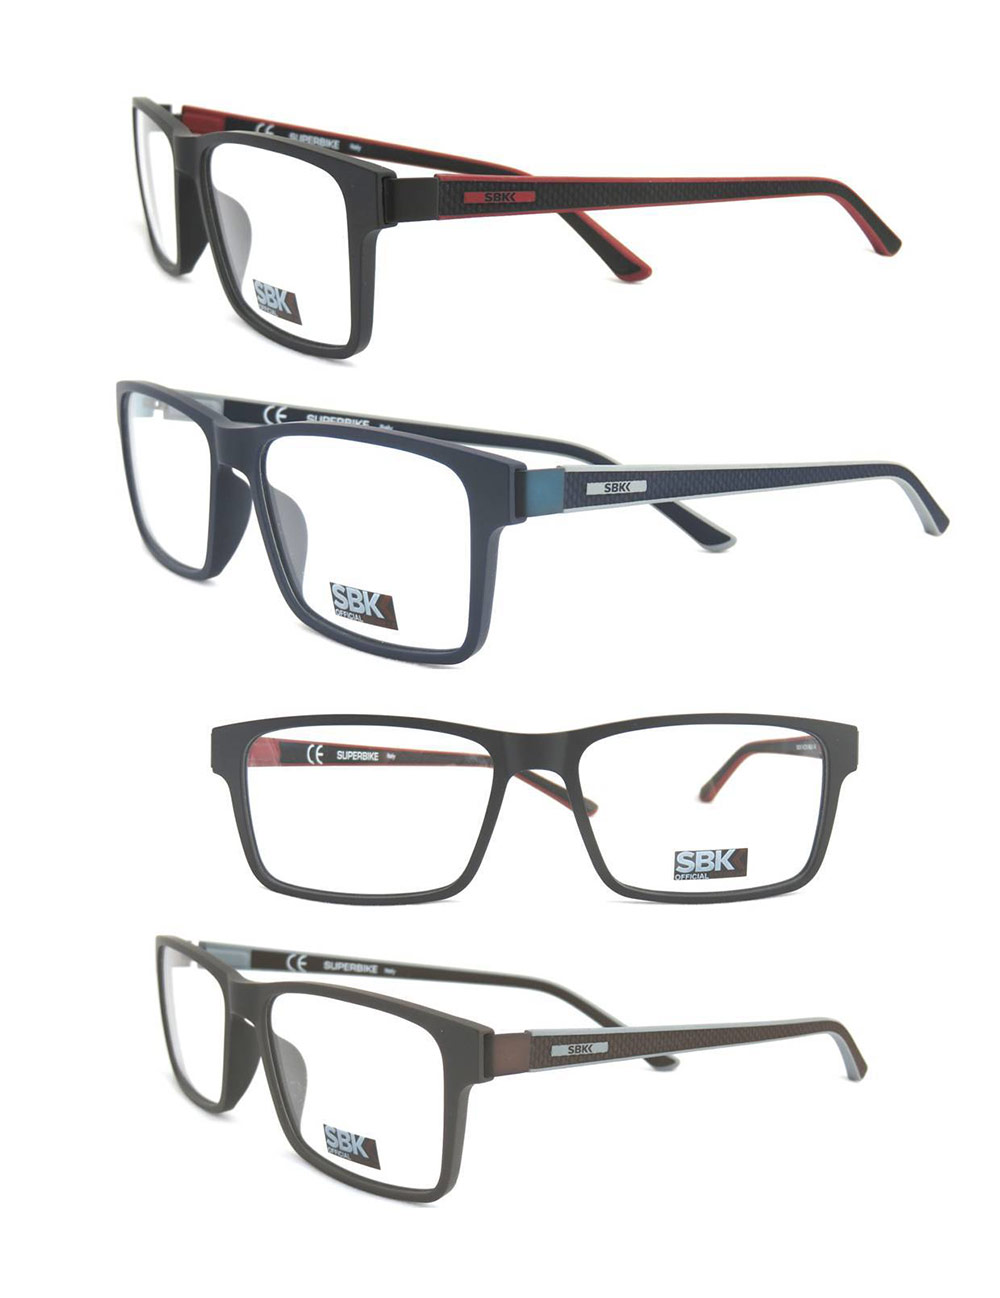 SBK Eyewear - SB299 - from Cardinal Eyewear NZ